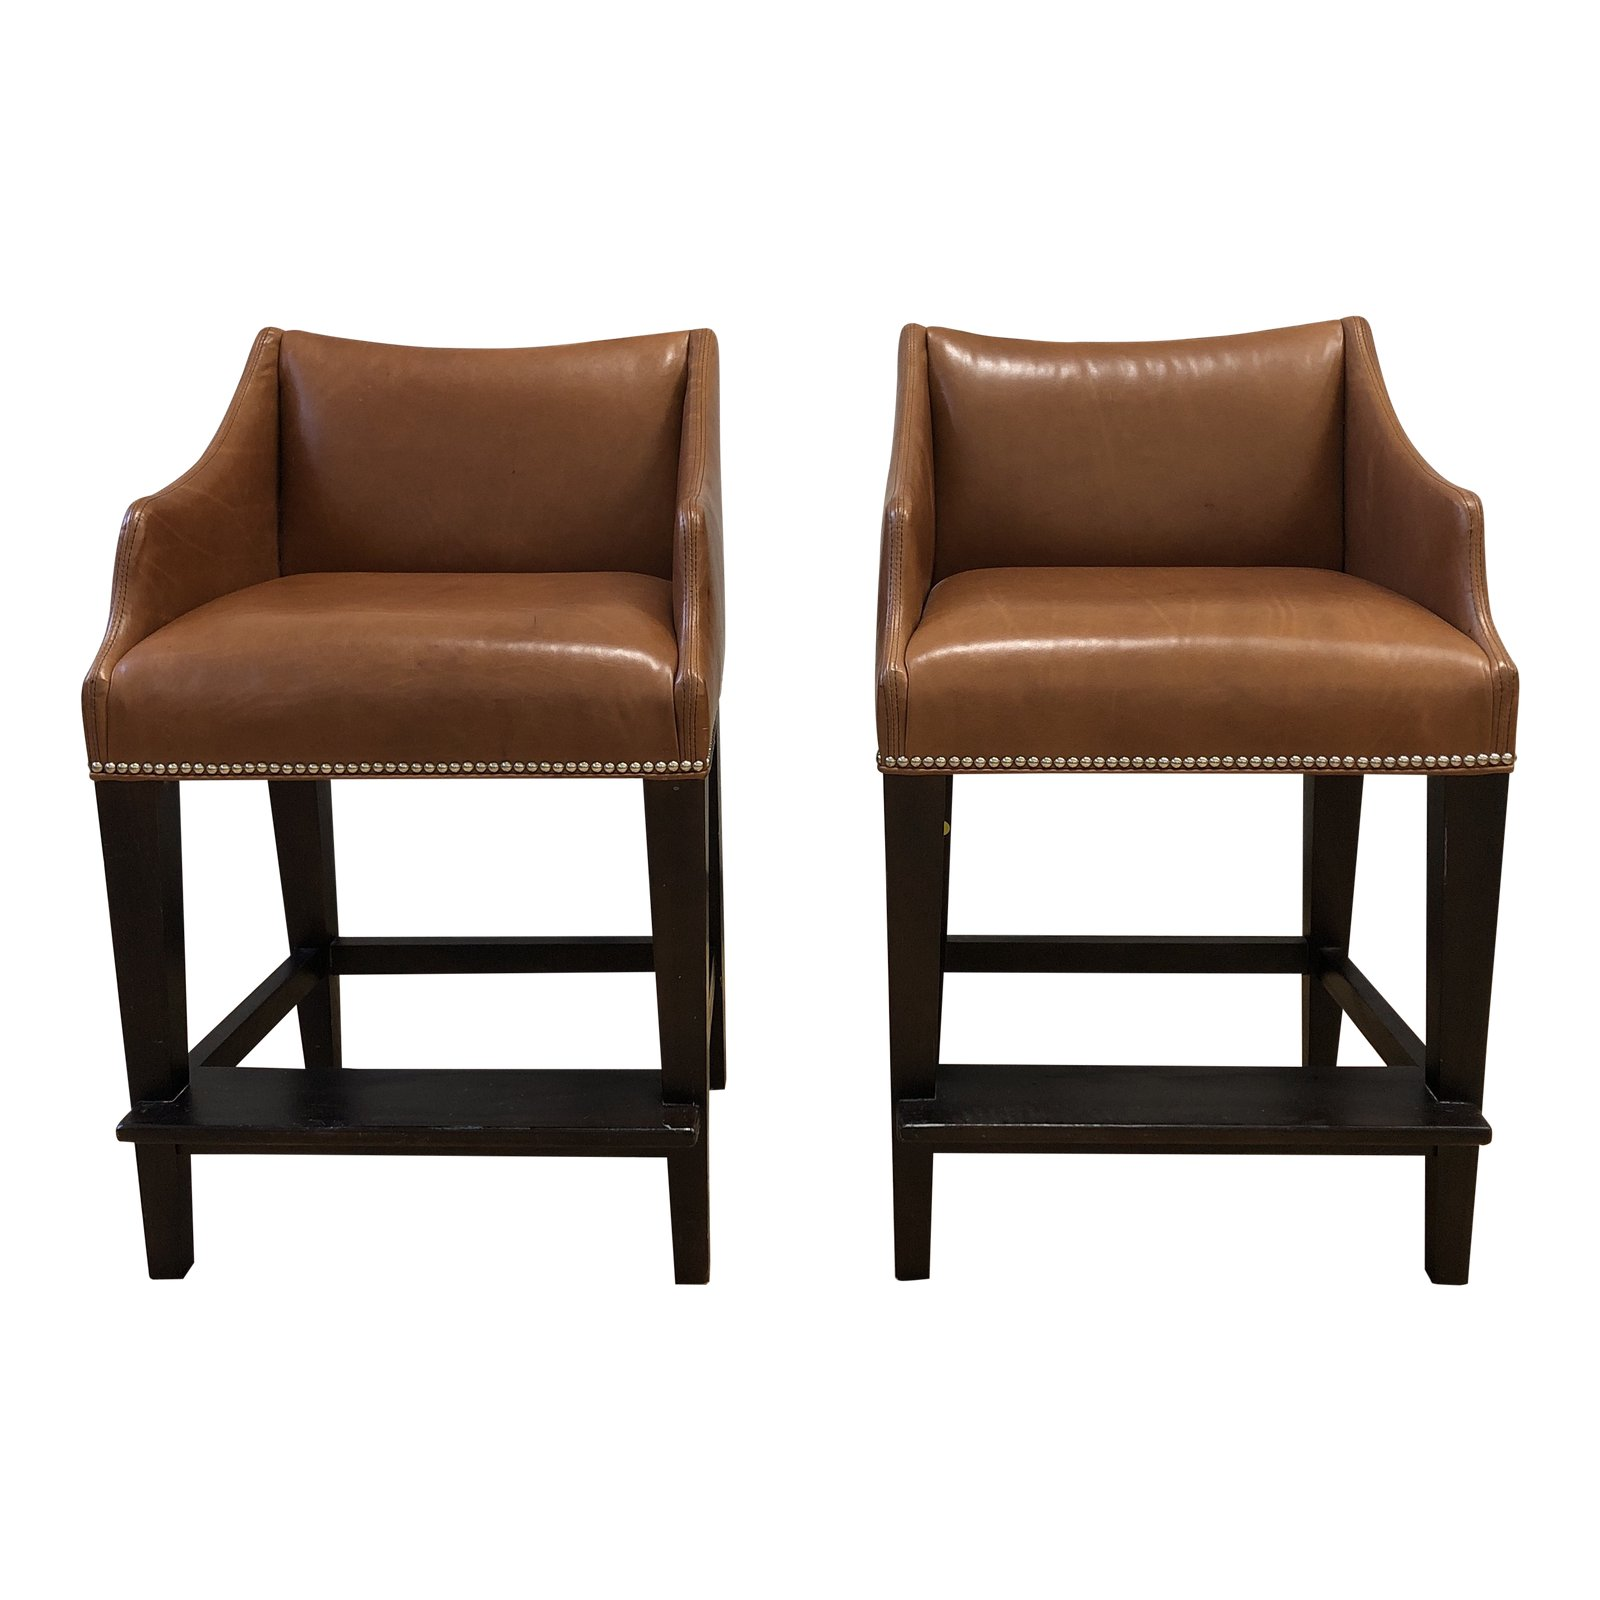 Groovy Pair Of William Sonoma Grant Leather Counter Stools Alphanode Cool Chair Designs And Ideas Alphanodeonline